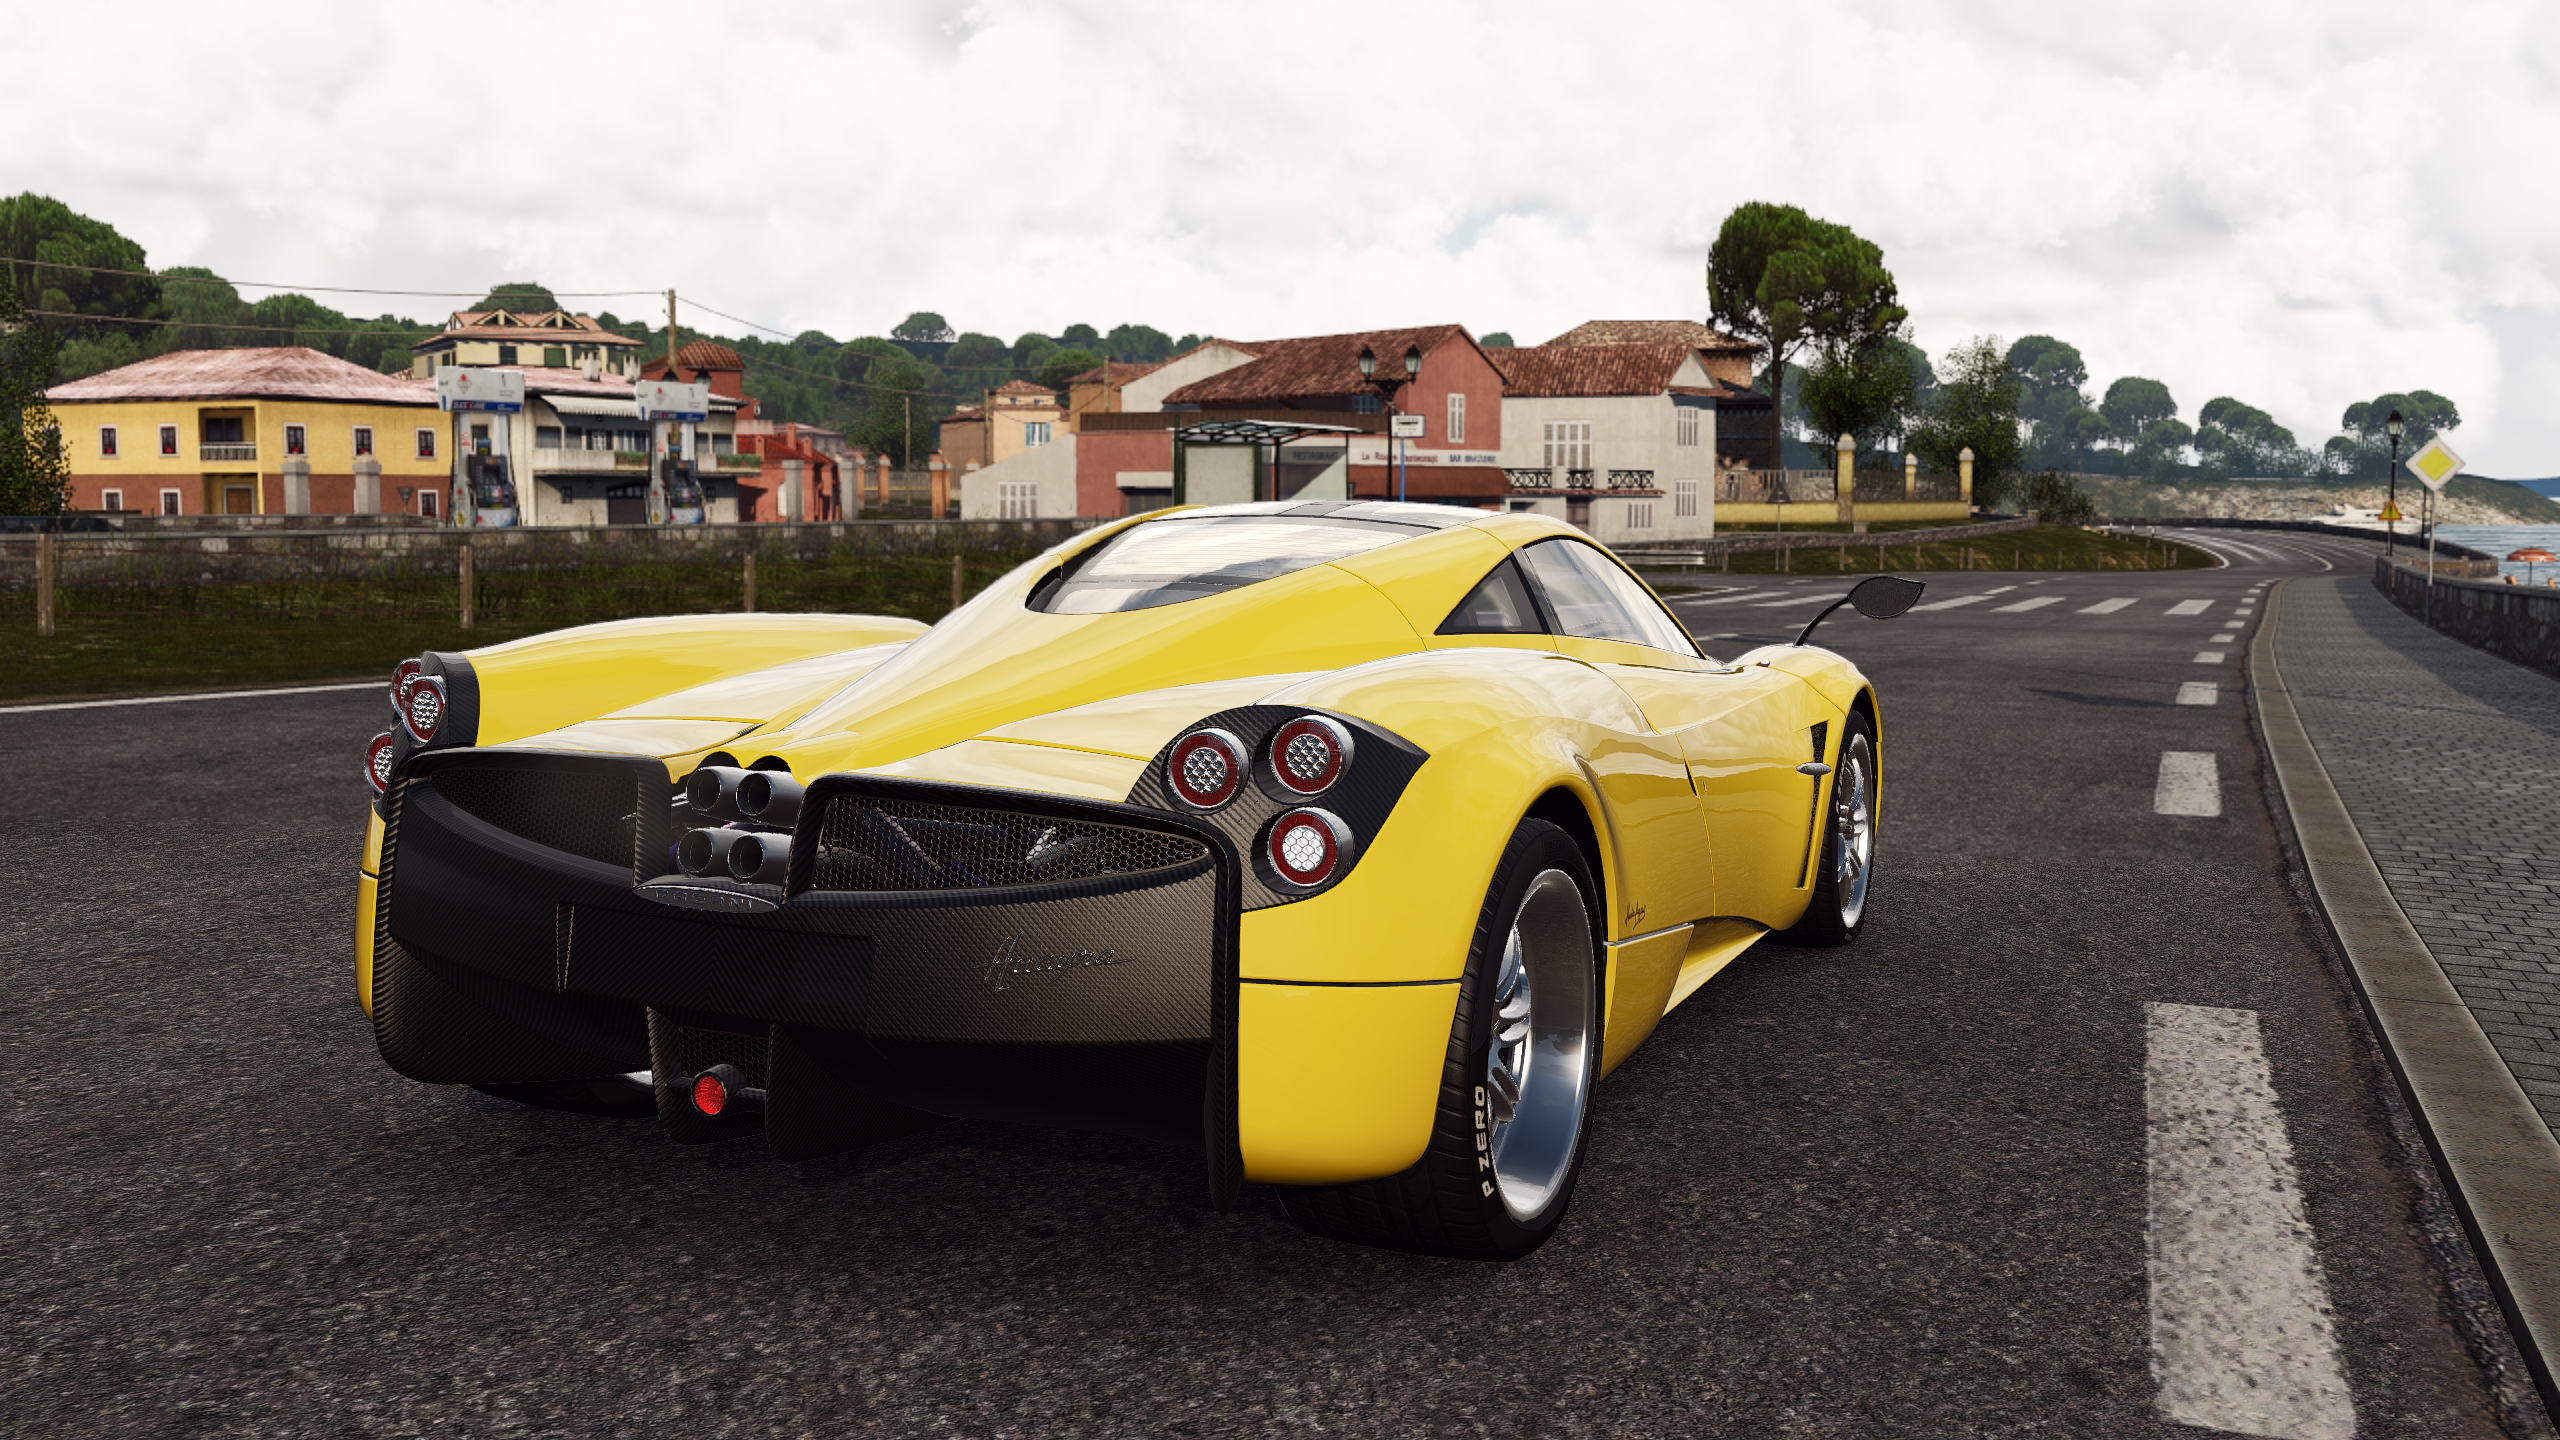 pcars2013-01-1122-44-6gihl.png